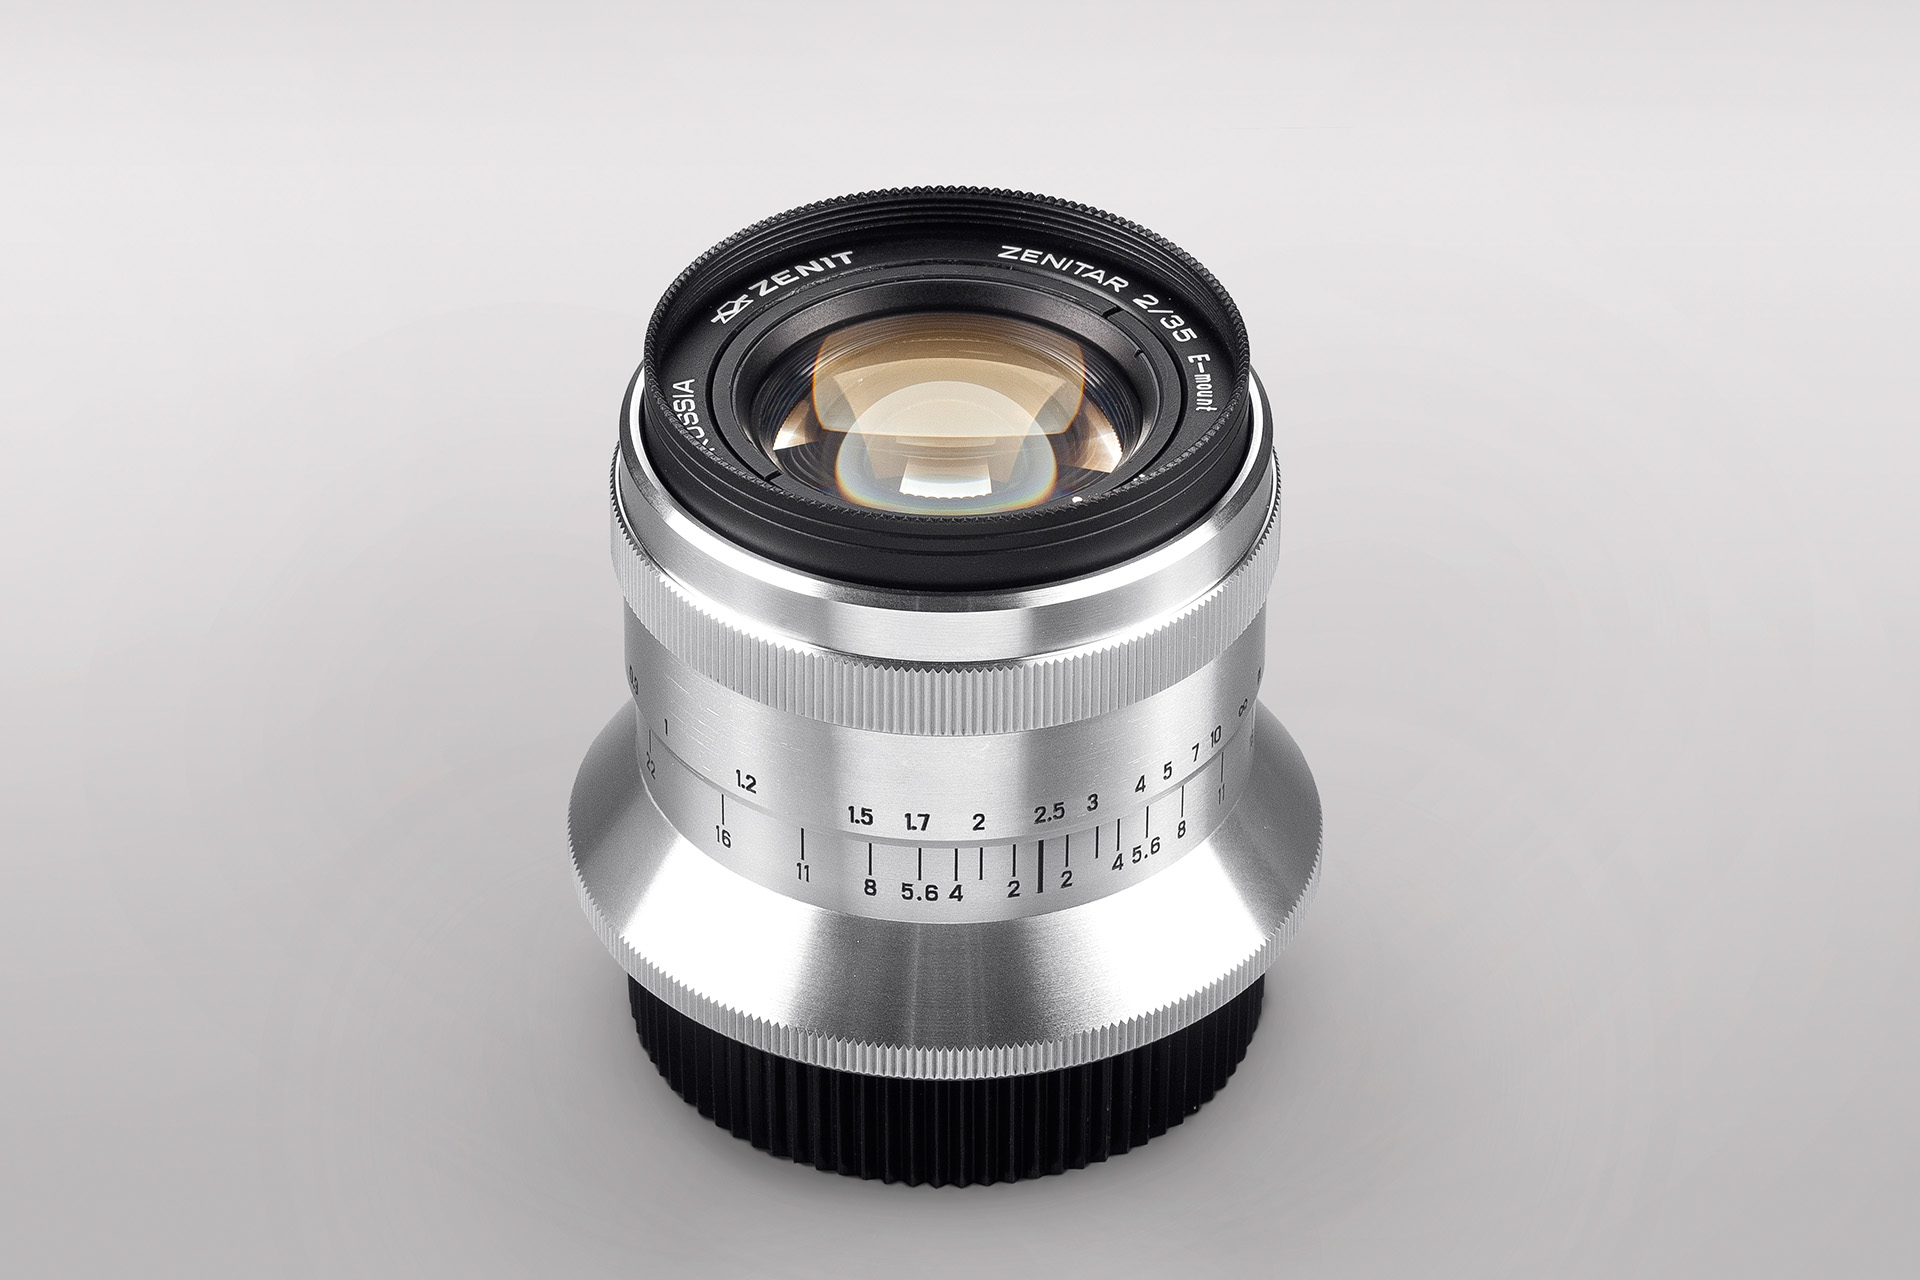 Zenit Officially Announced Their New Zenitar 35mm F 2 Lens For Sony E Mount Photo Rumors